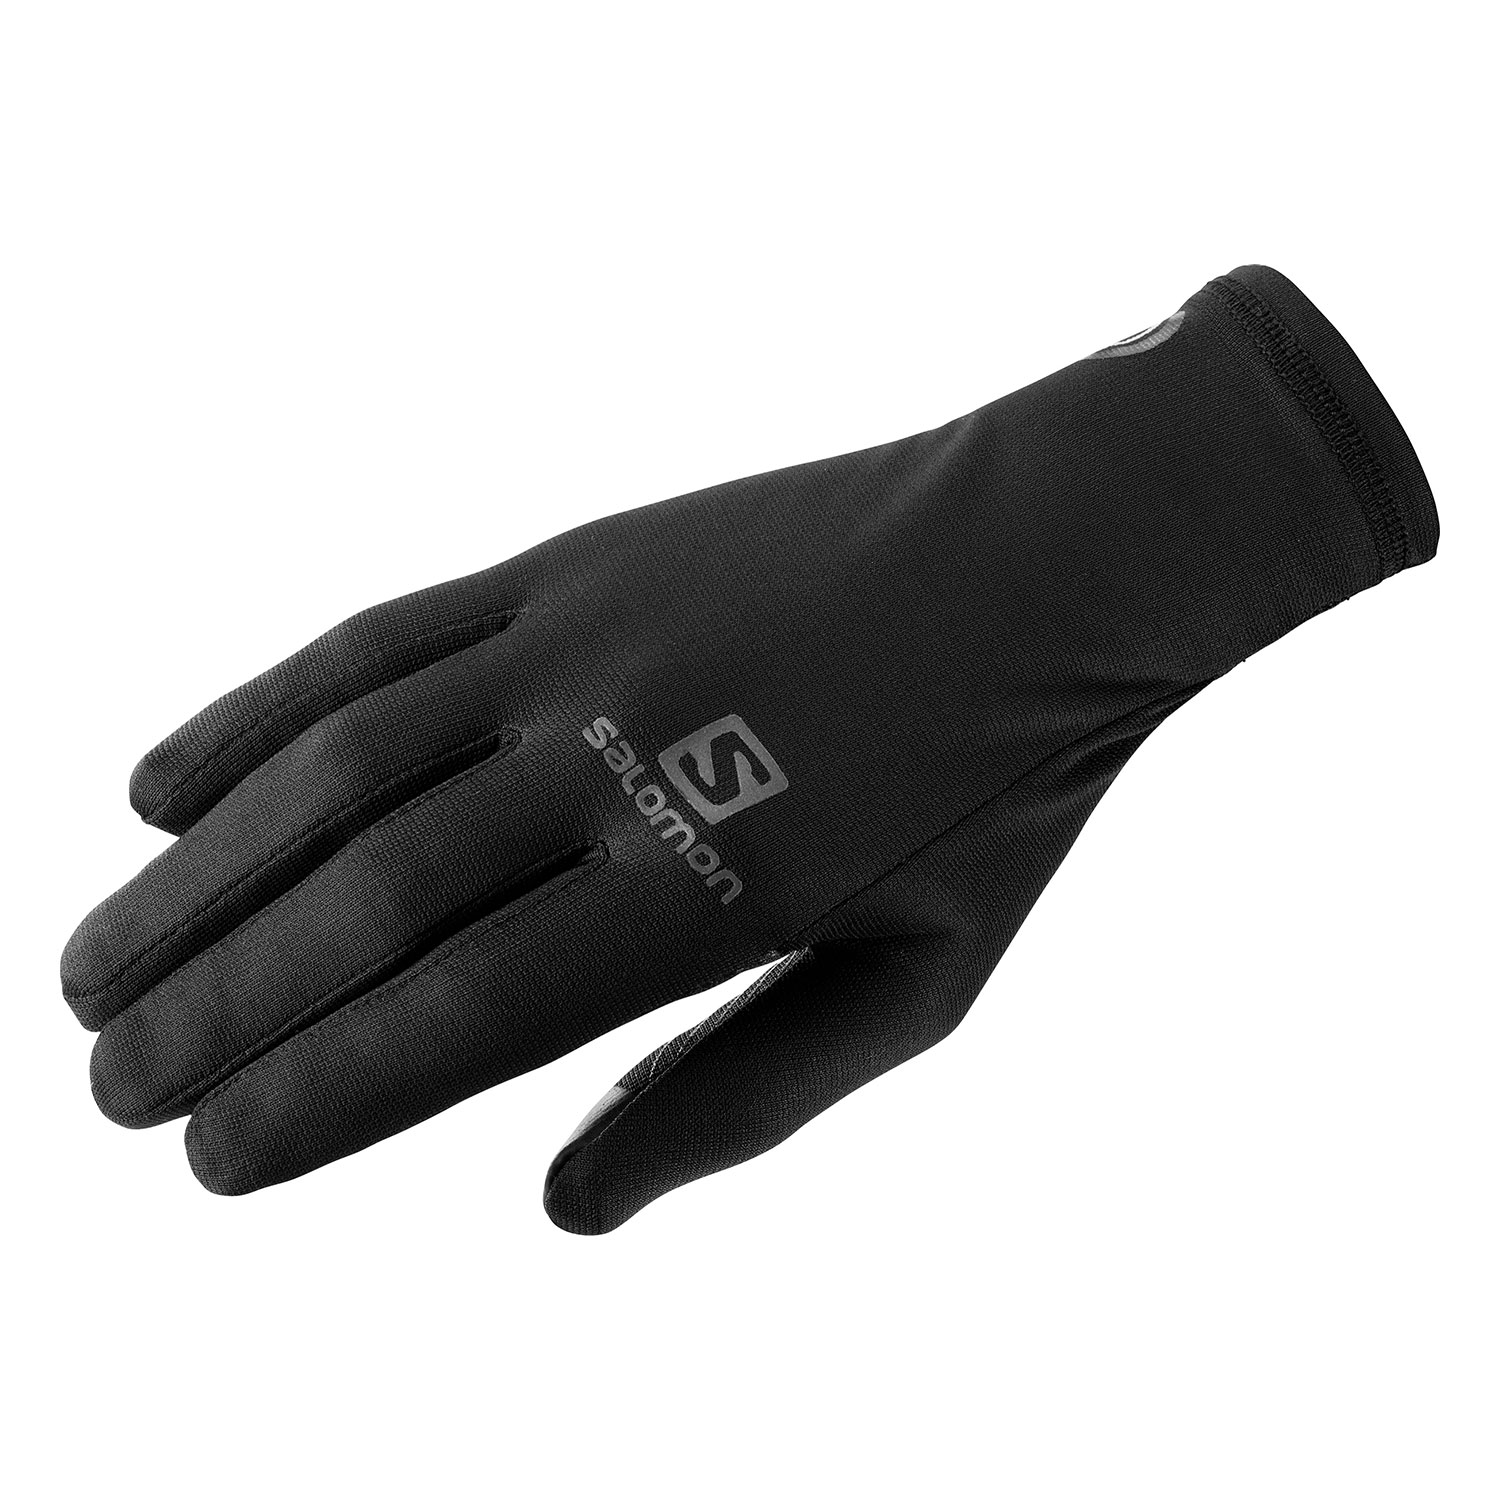 Salomon Nso Pro Gloves - Black